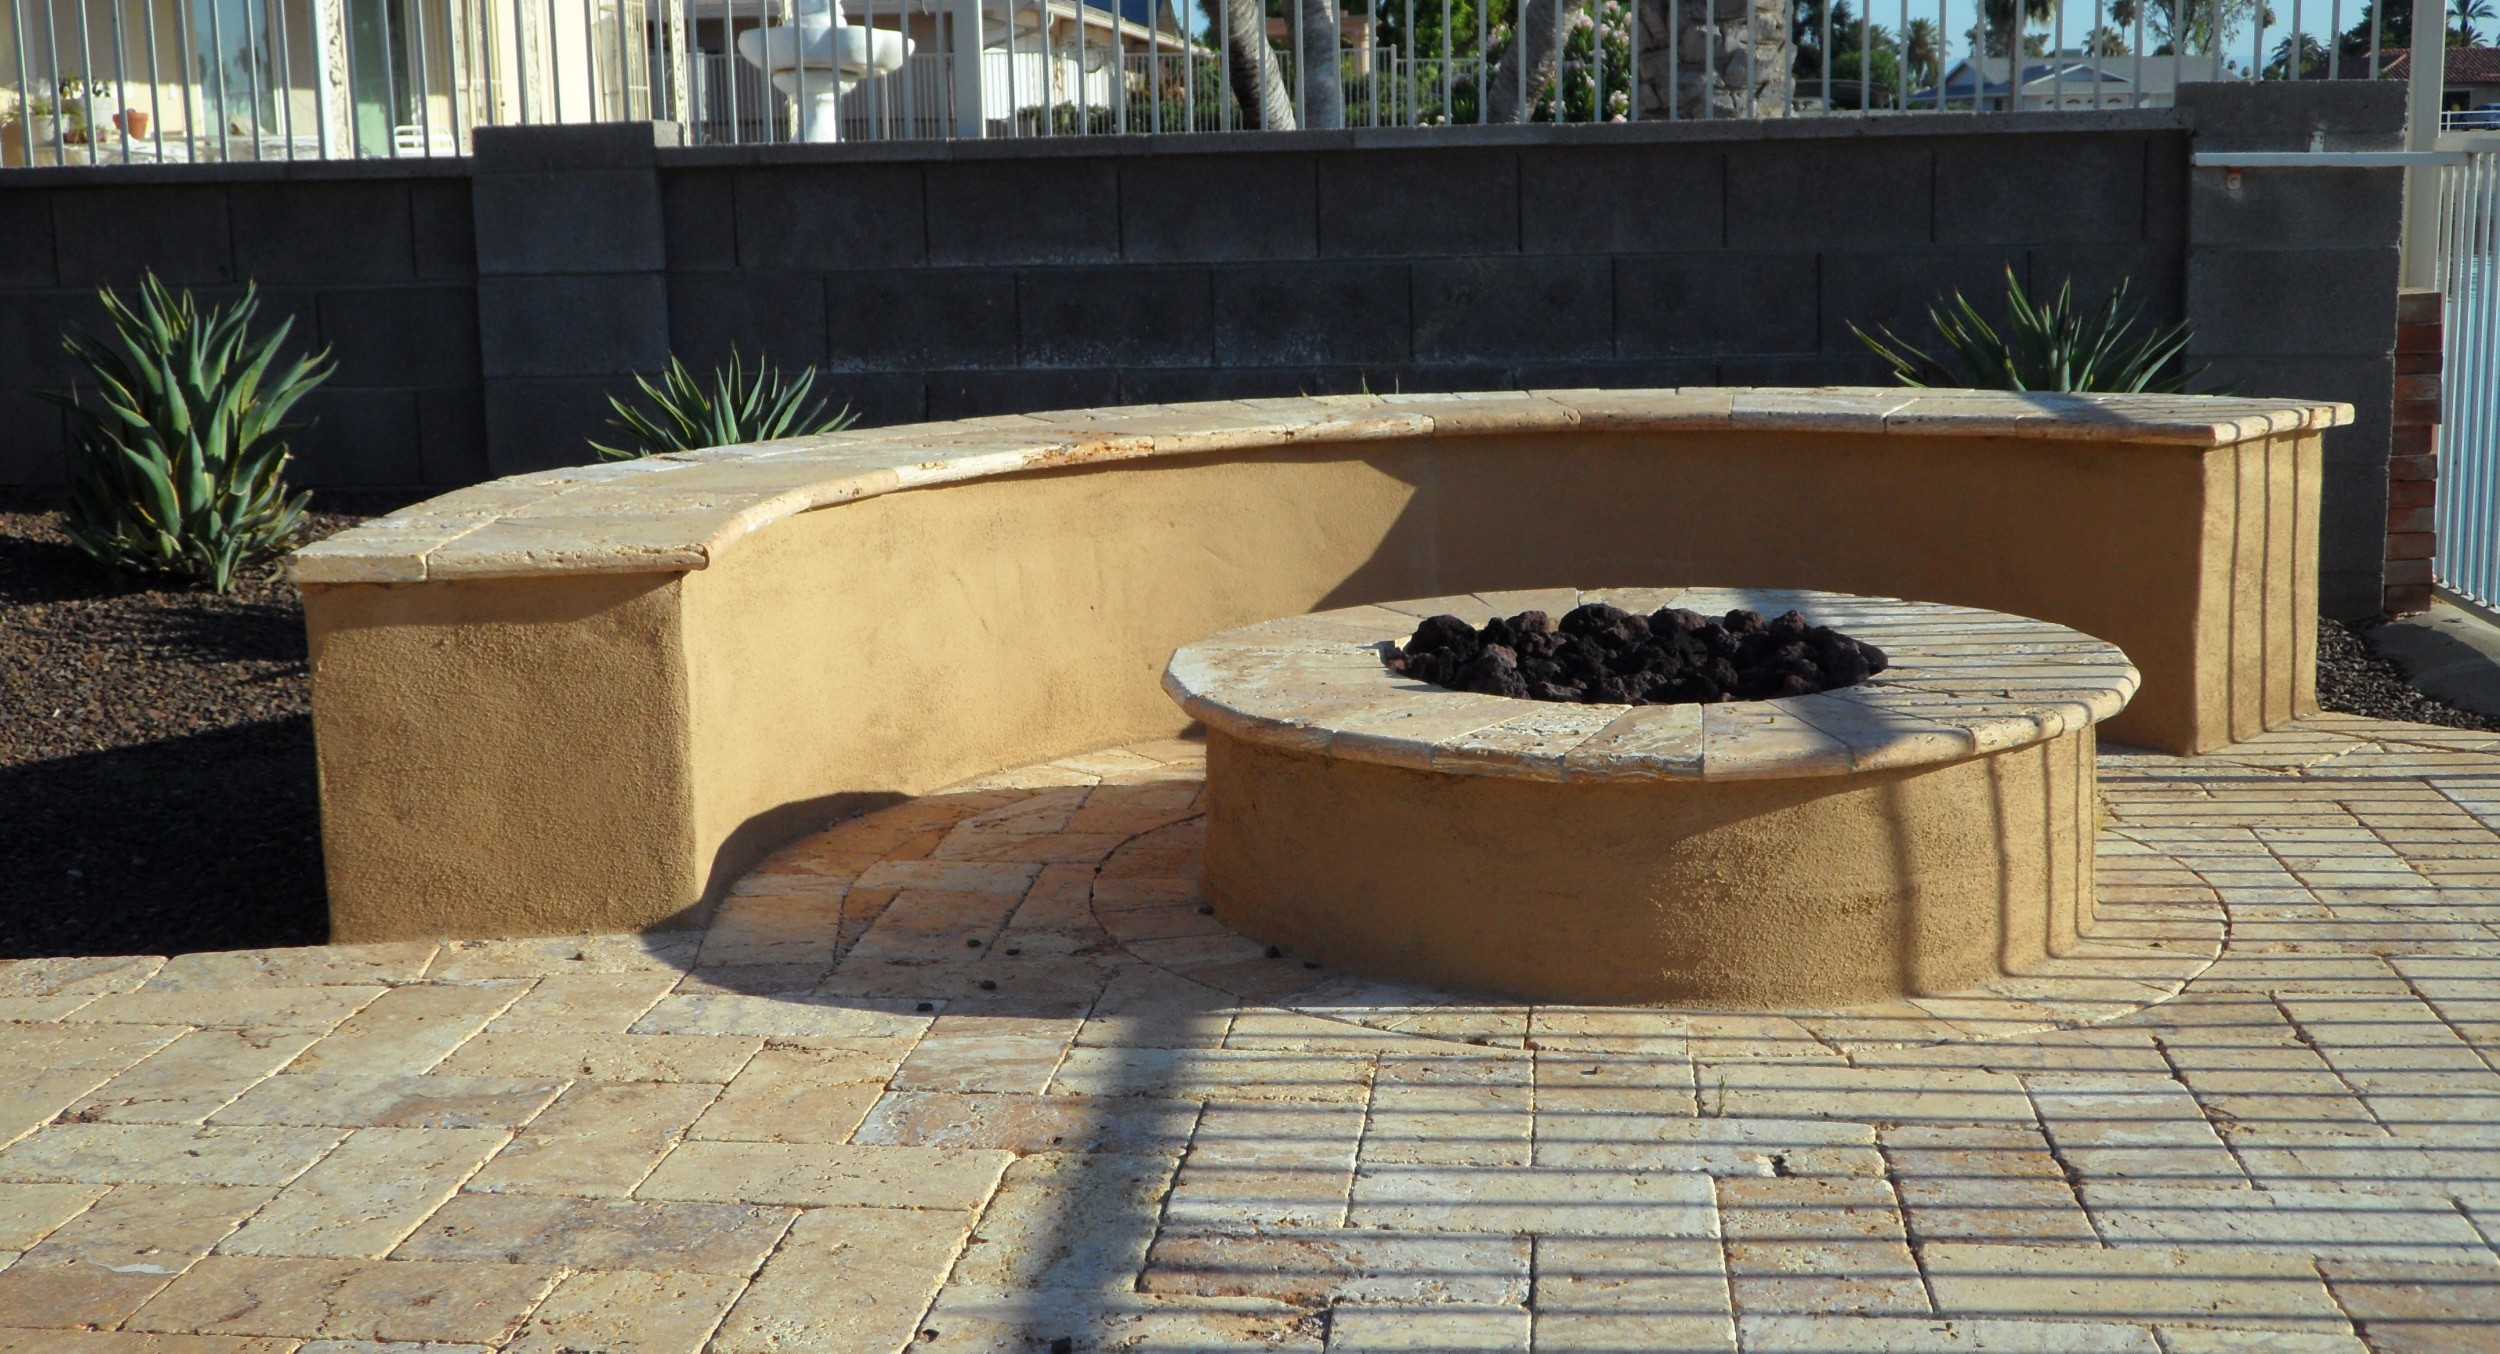 Matching the stucco seat wall and base to the predominant buckskin in the travertine patio made this outdoor fire pit's look outstanding. Far more of a focal point than if it was all stone-faced.